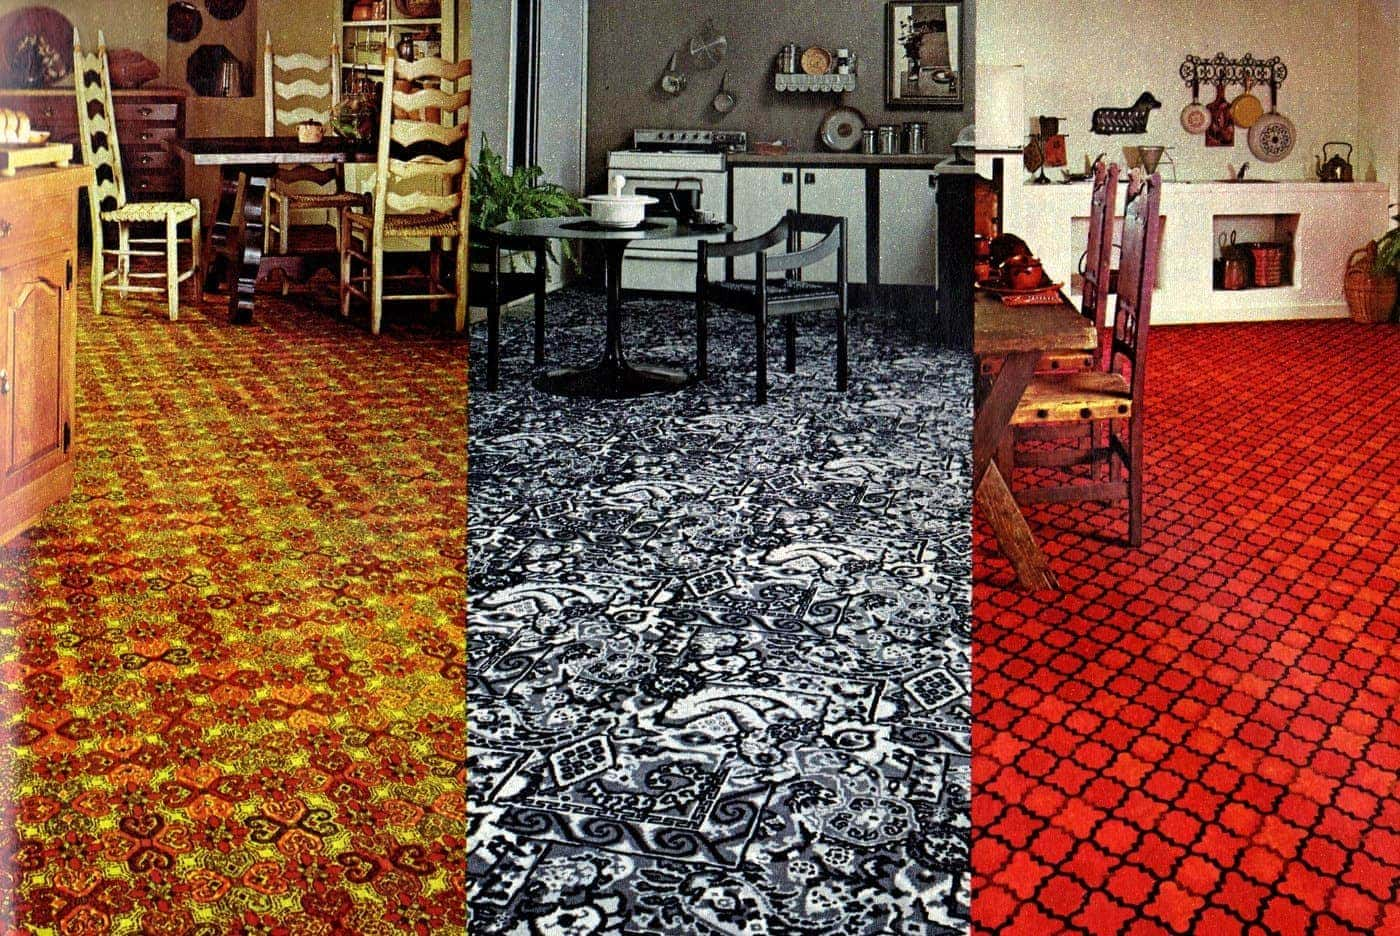 See Vintage Kitchen Carpet From When It Was Popular Home Decor In The 60s 70s Click Americana